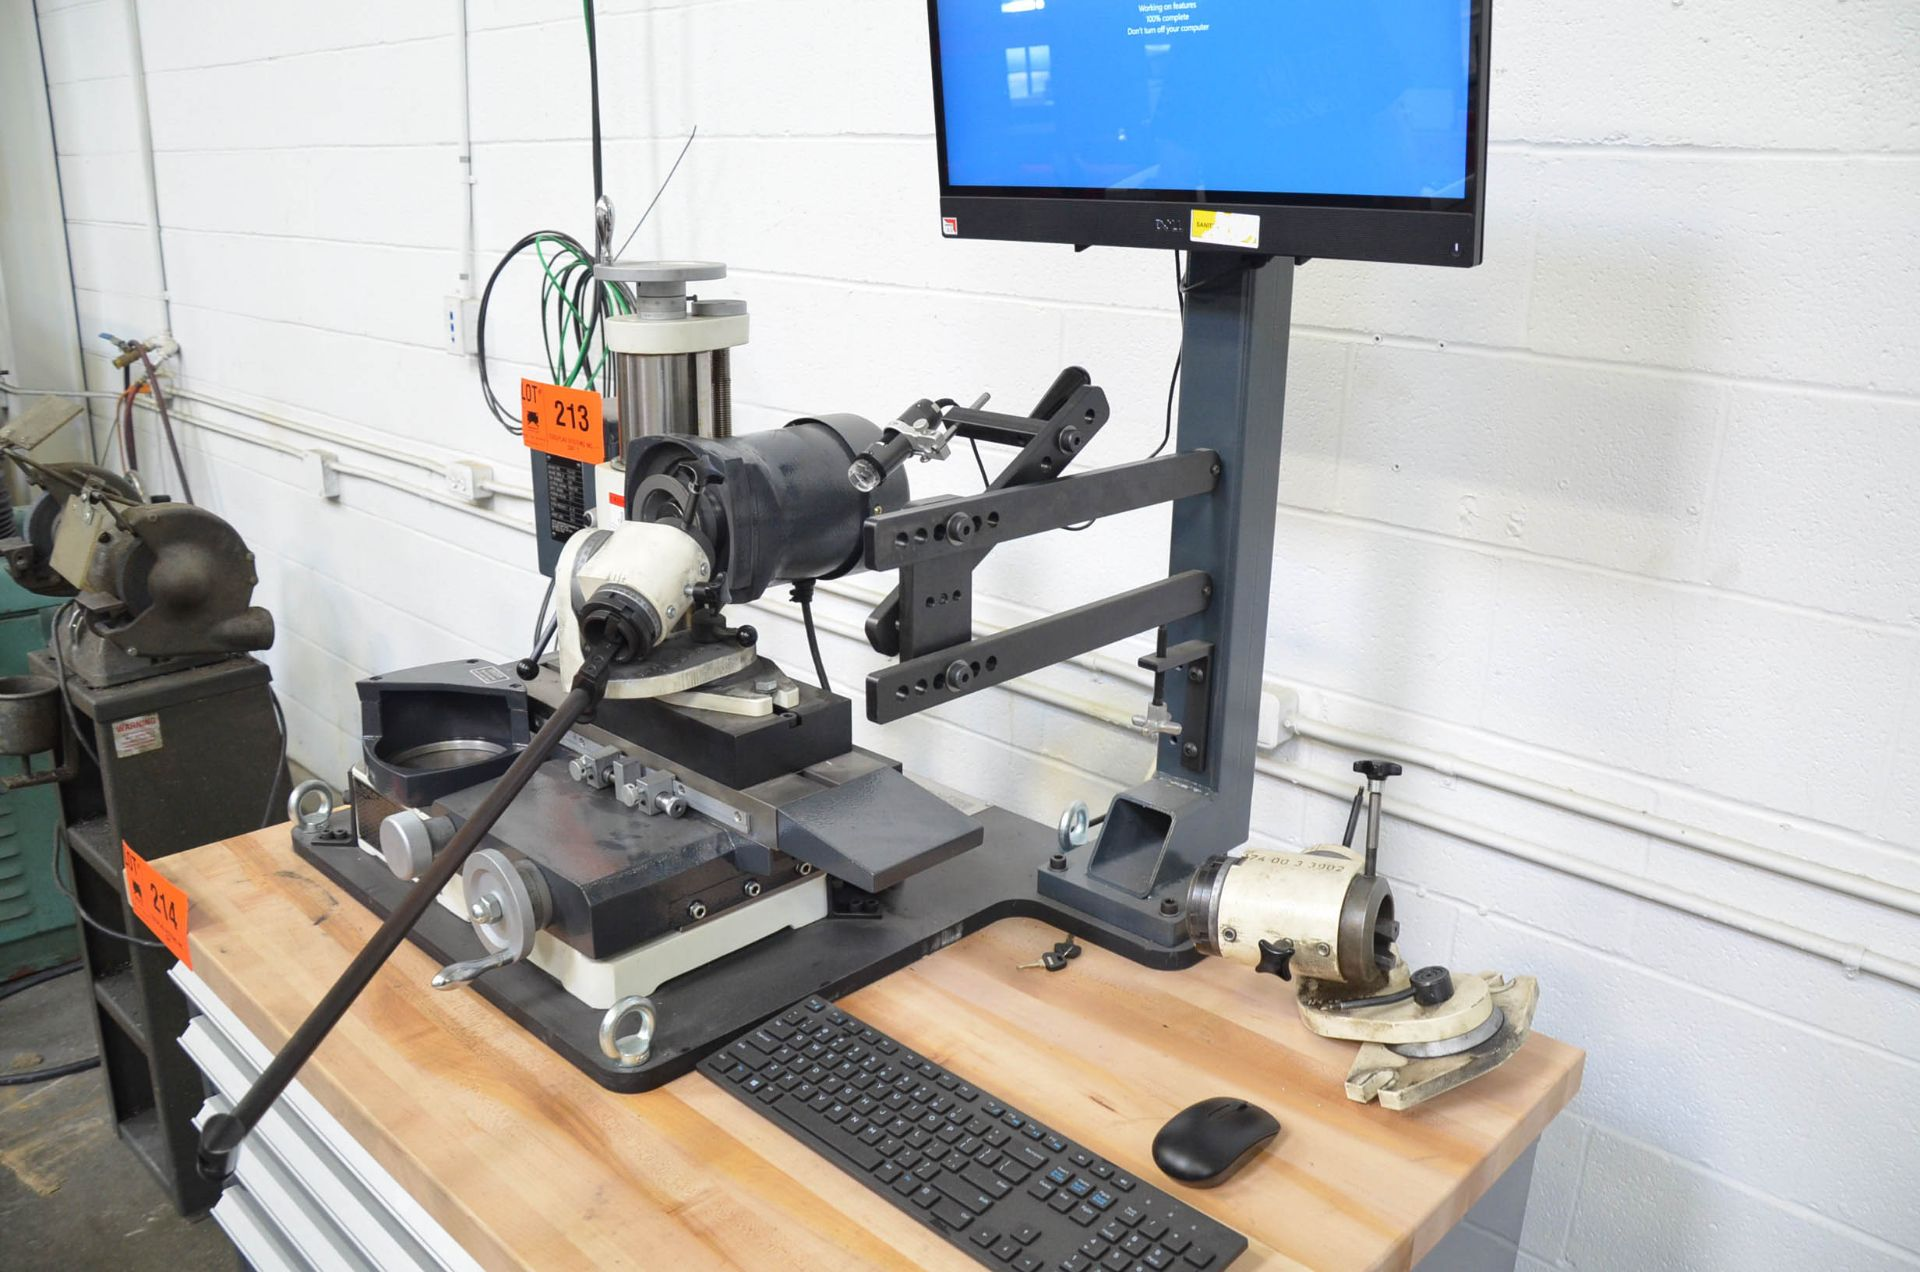 CHEVALIER (2020) FCG-610 BENCH TYPE TOOL AND CUTTER GRINDER WITH DIGITAL CAMERA INSPECTION SYSTEM, - Image 4 of 8